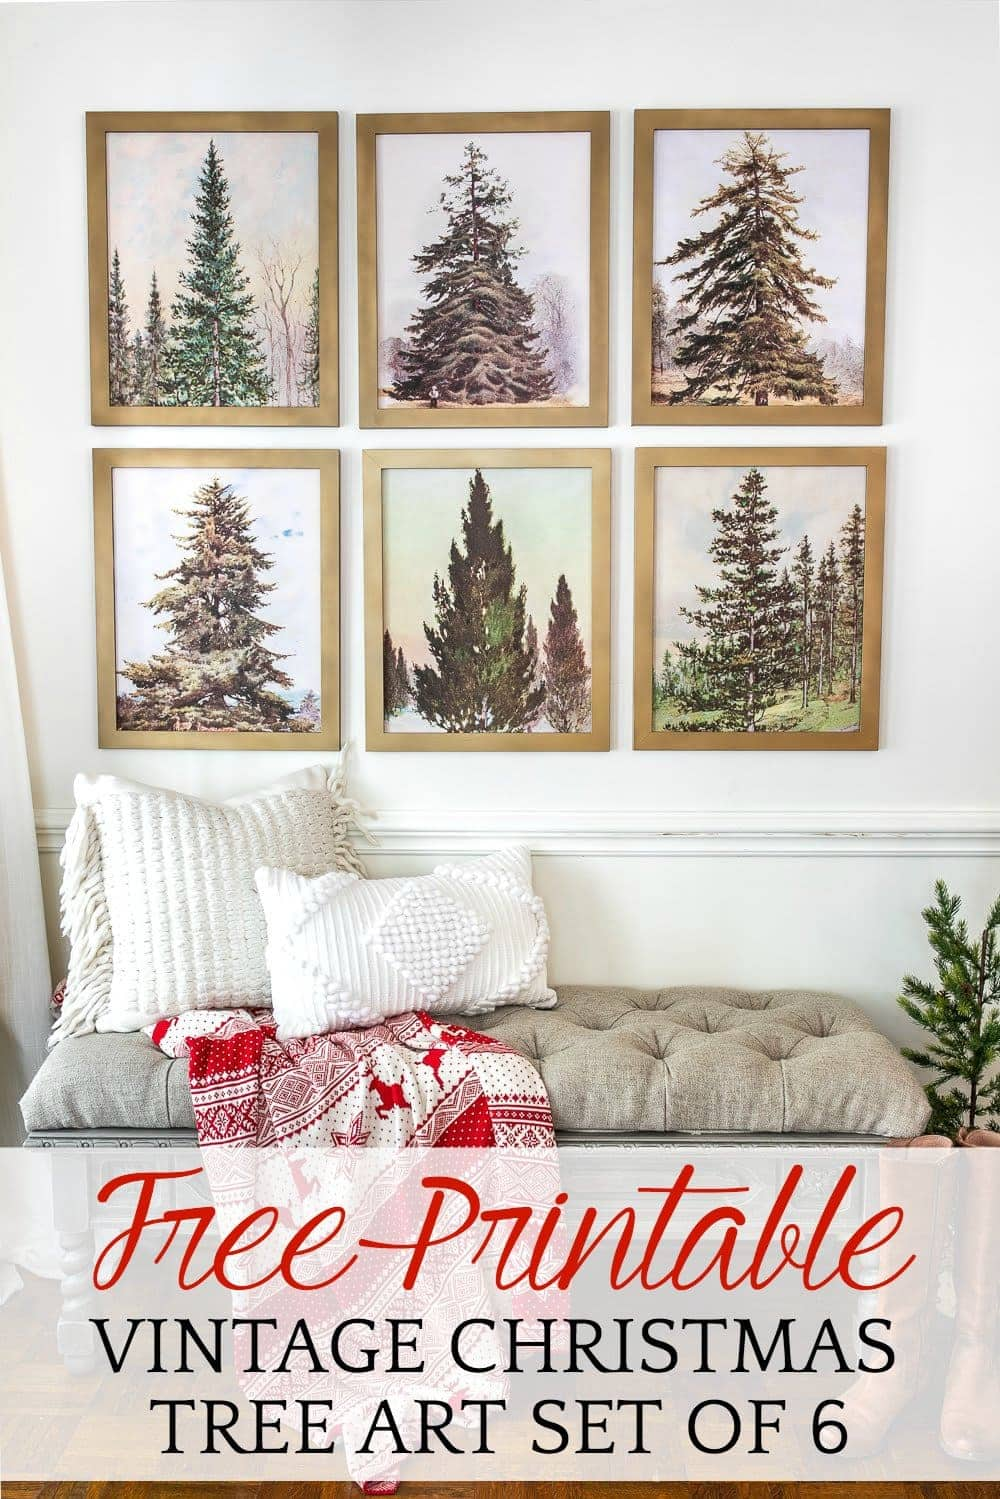 Free Printable Vintage Christmas Tree Art | A free Christmas printable art set of 6 featuring vintage Christmas trees that work in all types of decorating styles. #printableart #Christmasart